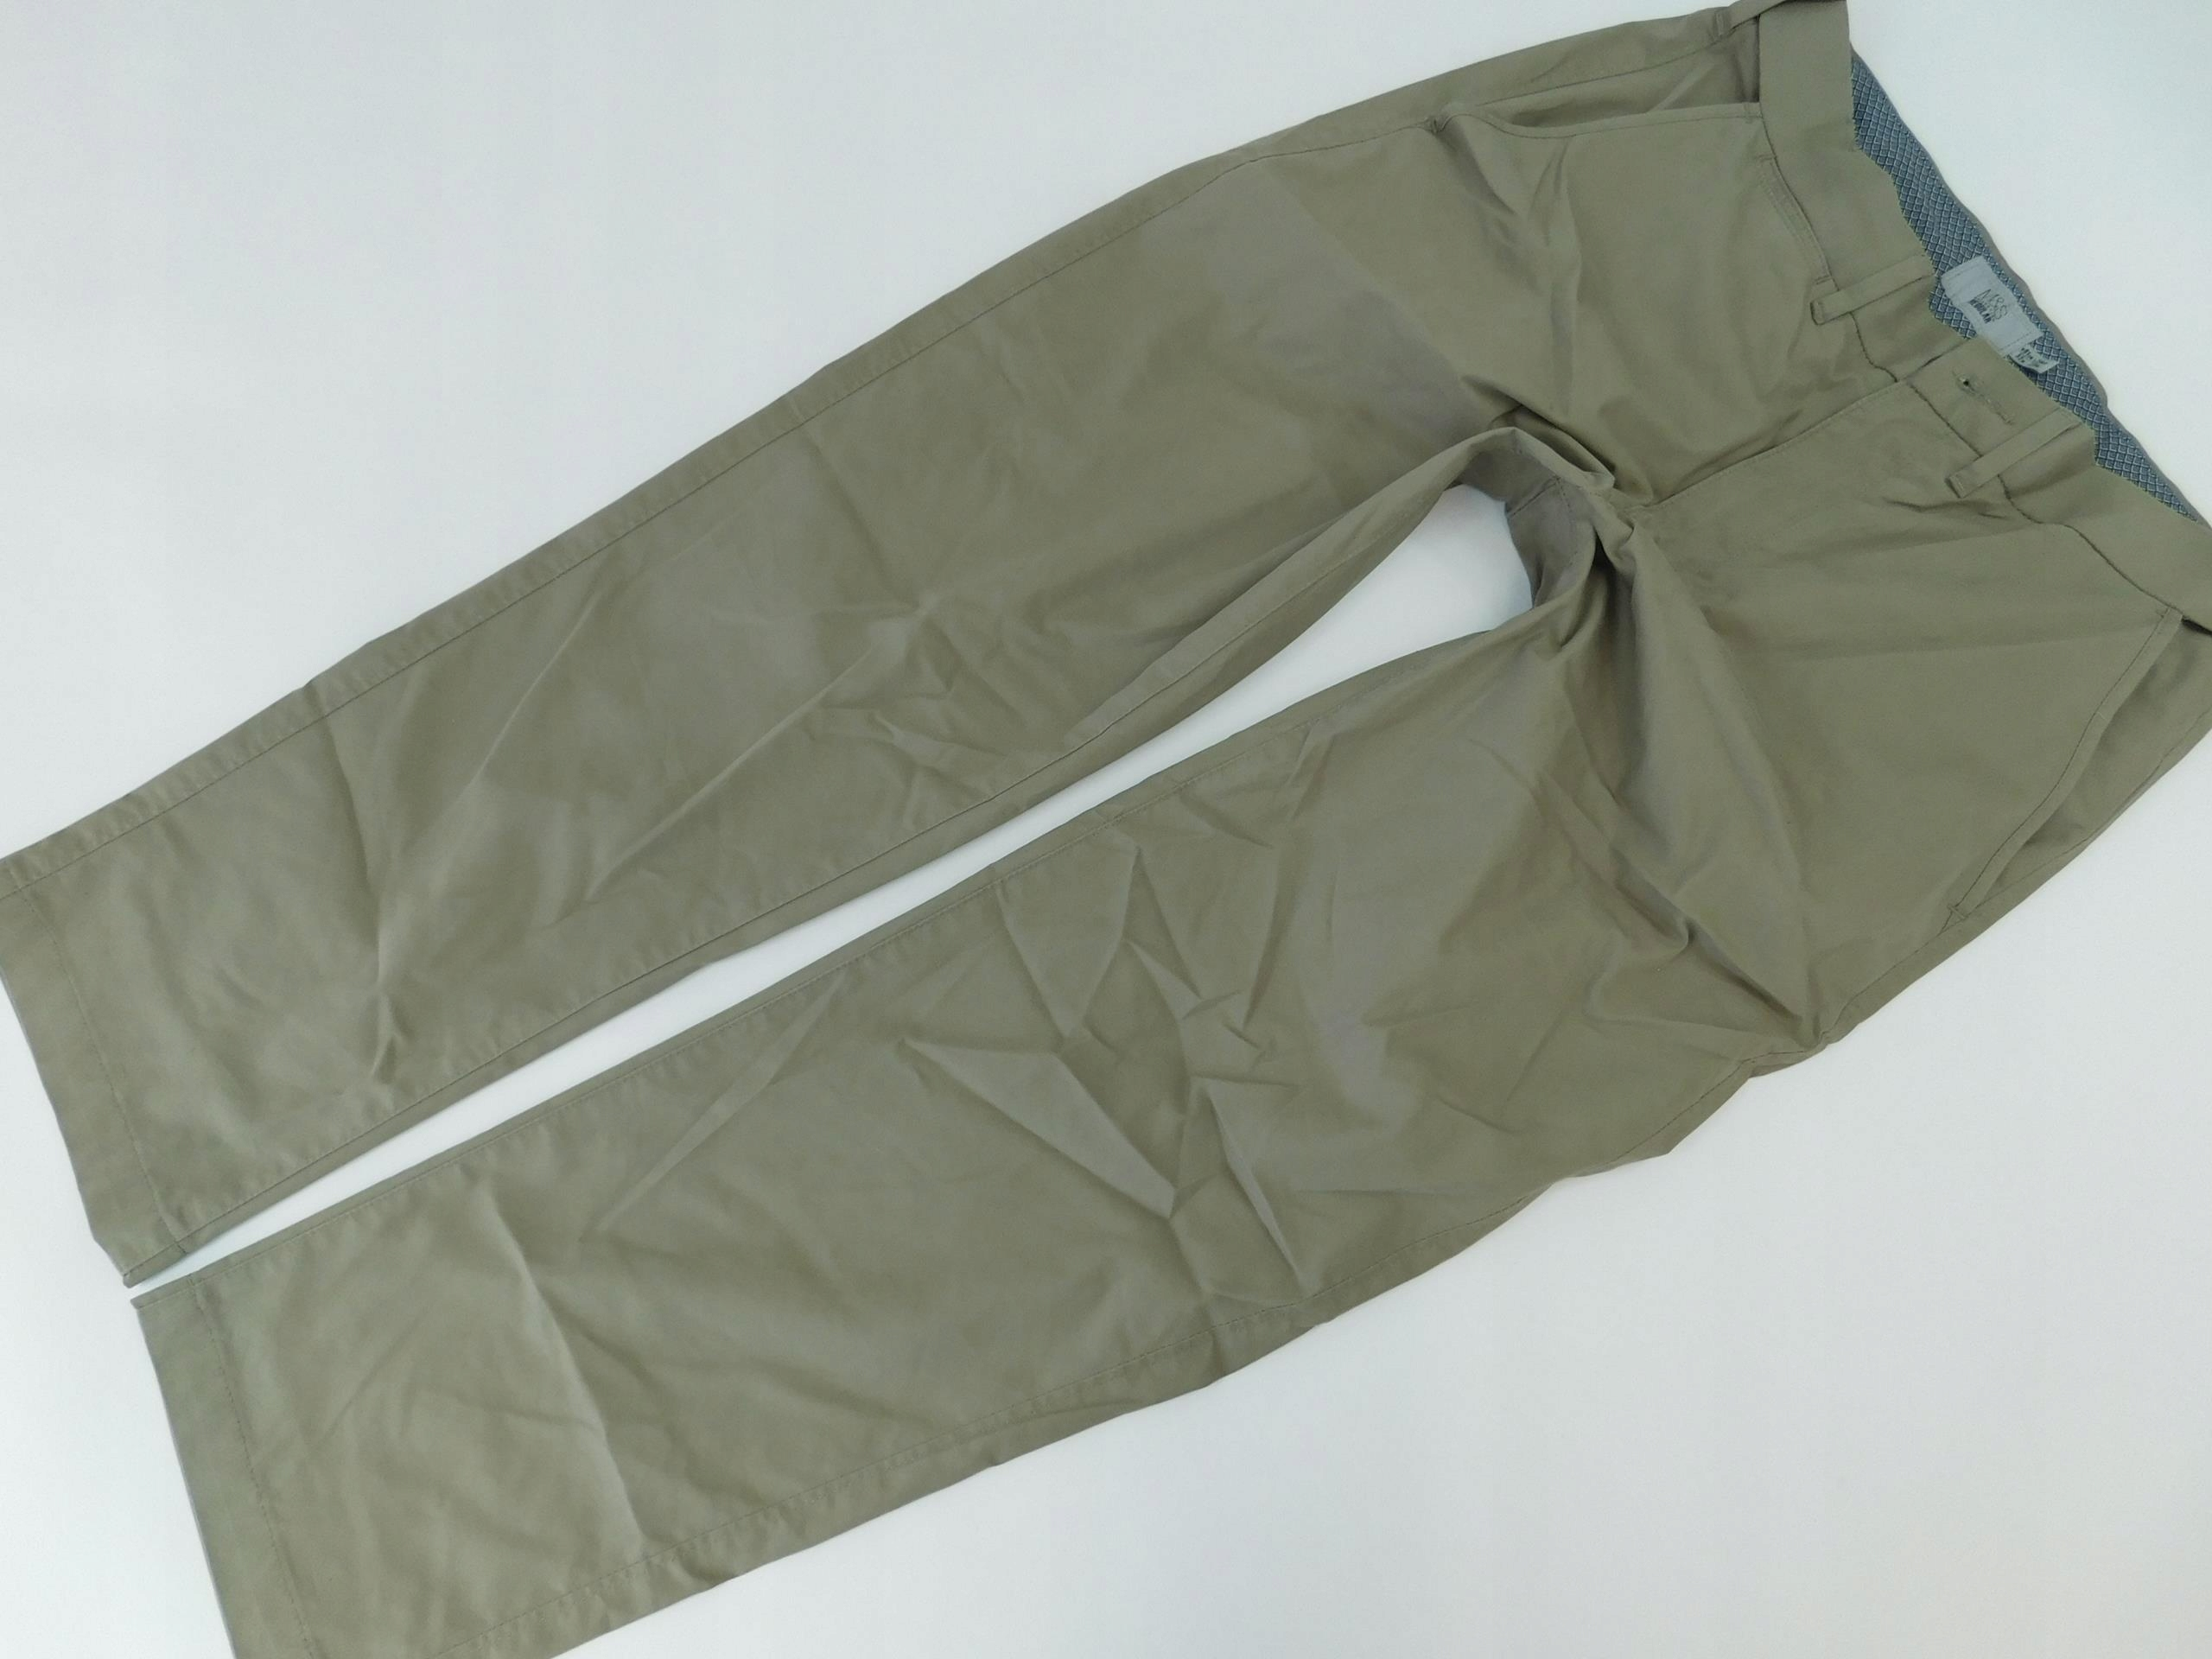 1206A80 MARKS&SPENCER chinos BEŻOWE W32L29